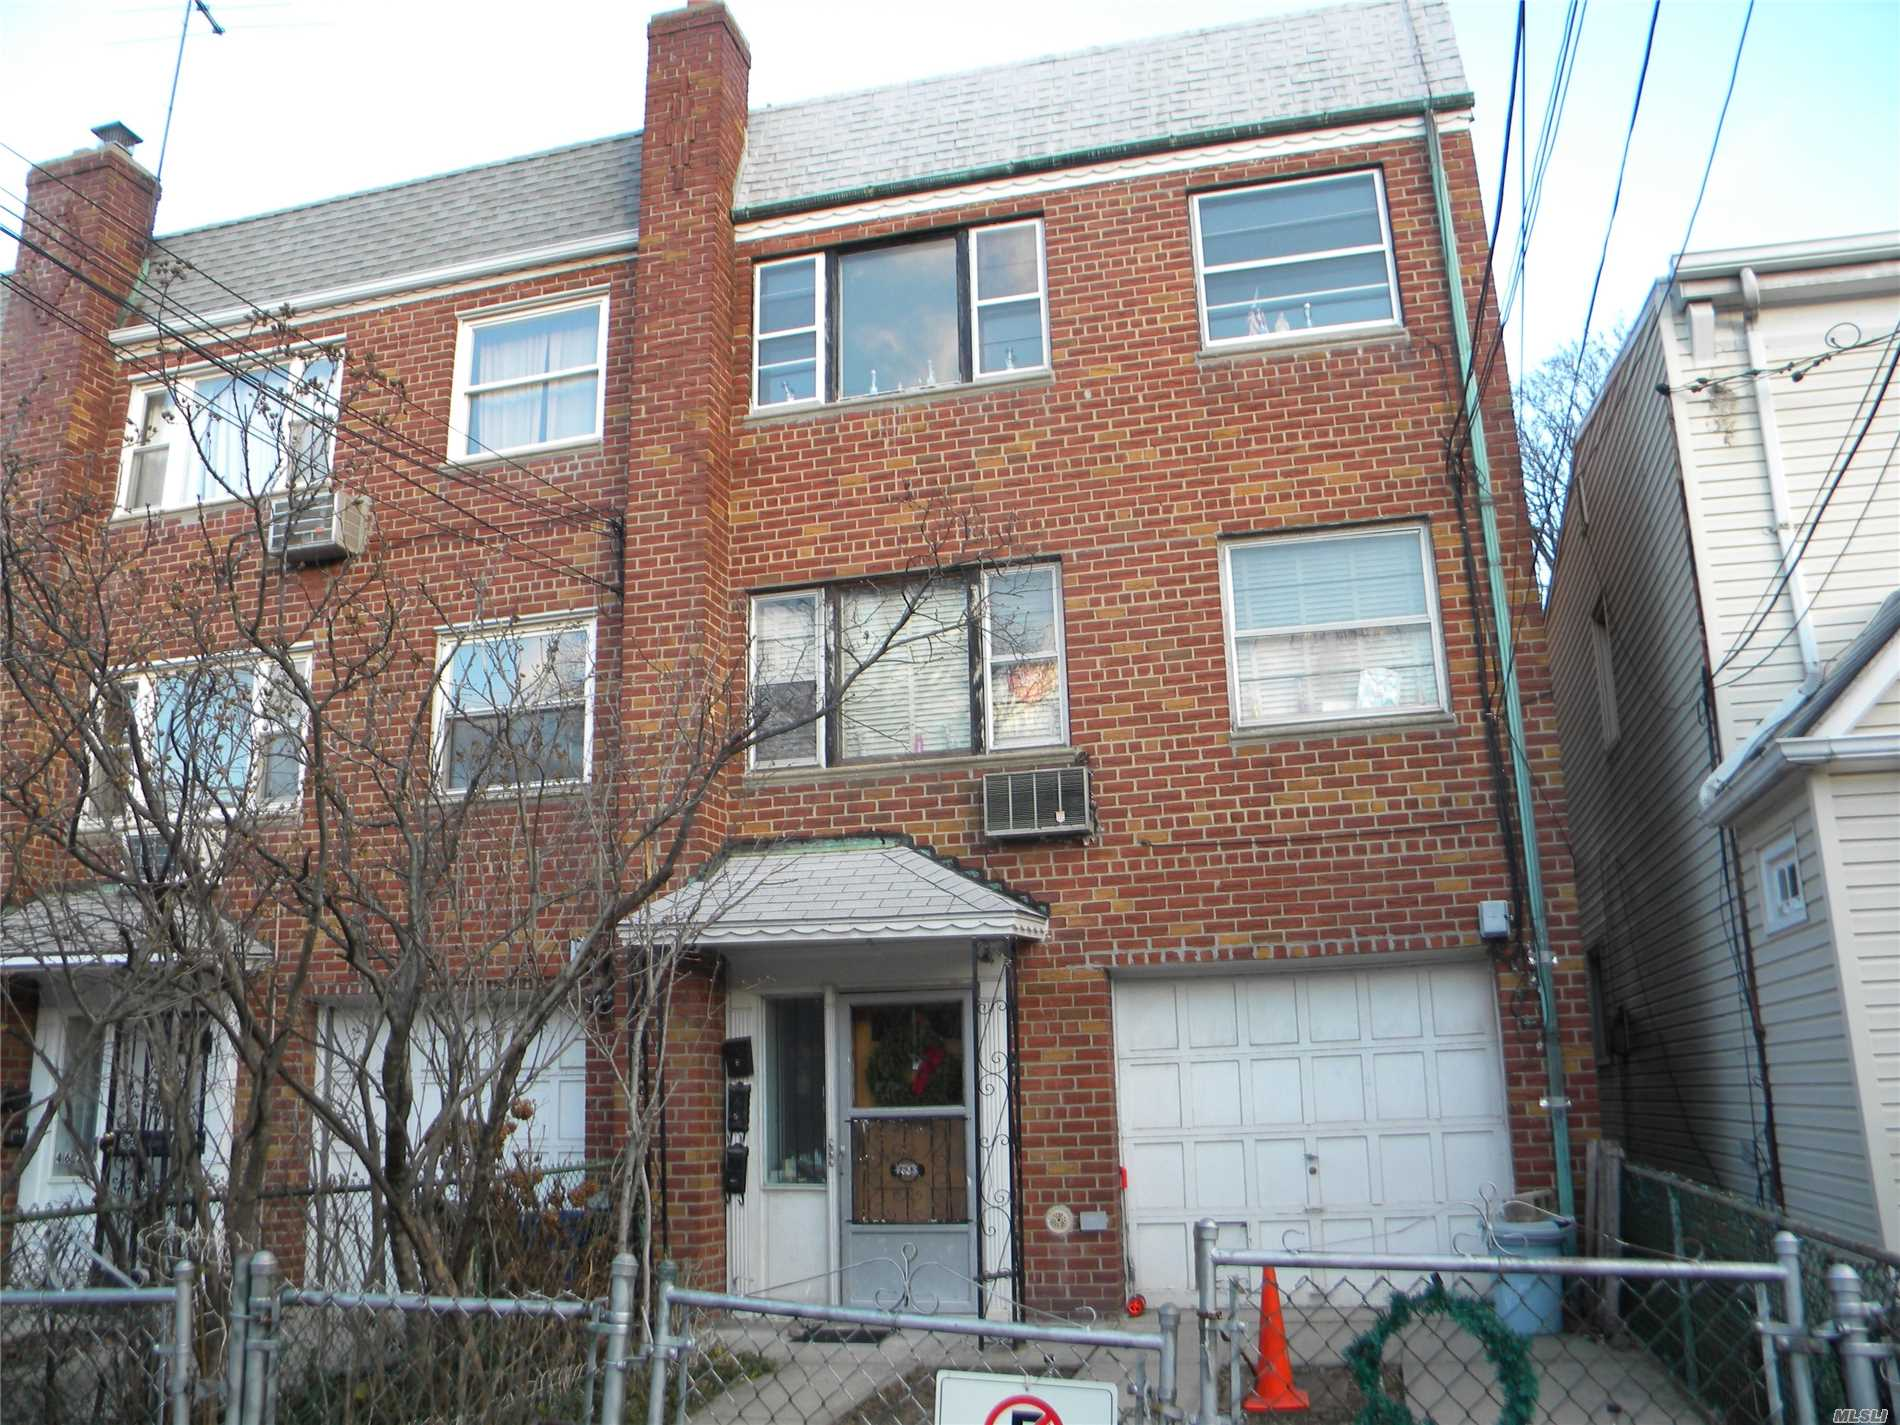 Property Needs Renovations. Being Sold As Is, No Claims To The Operation Of Appliances. Seller Is Looking For Cash Offers Or No Mortgage Contingency Deals.